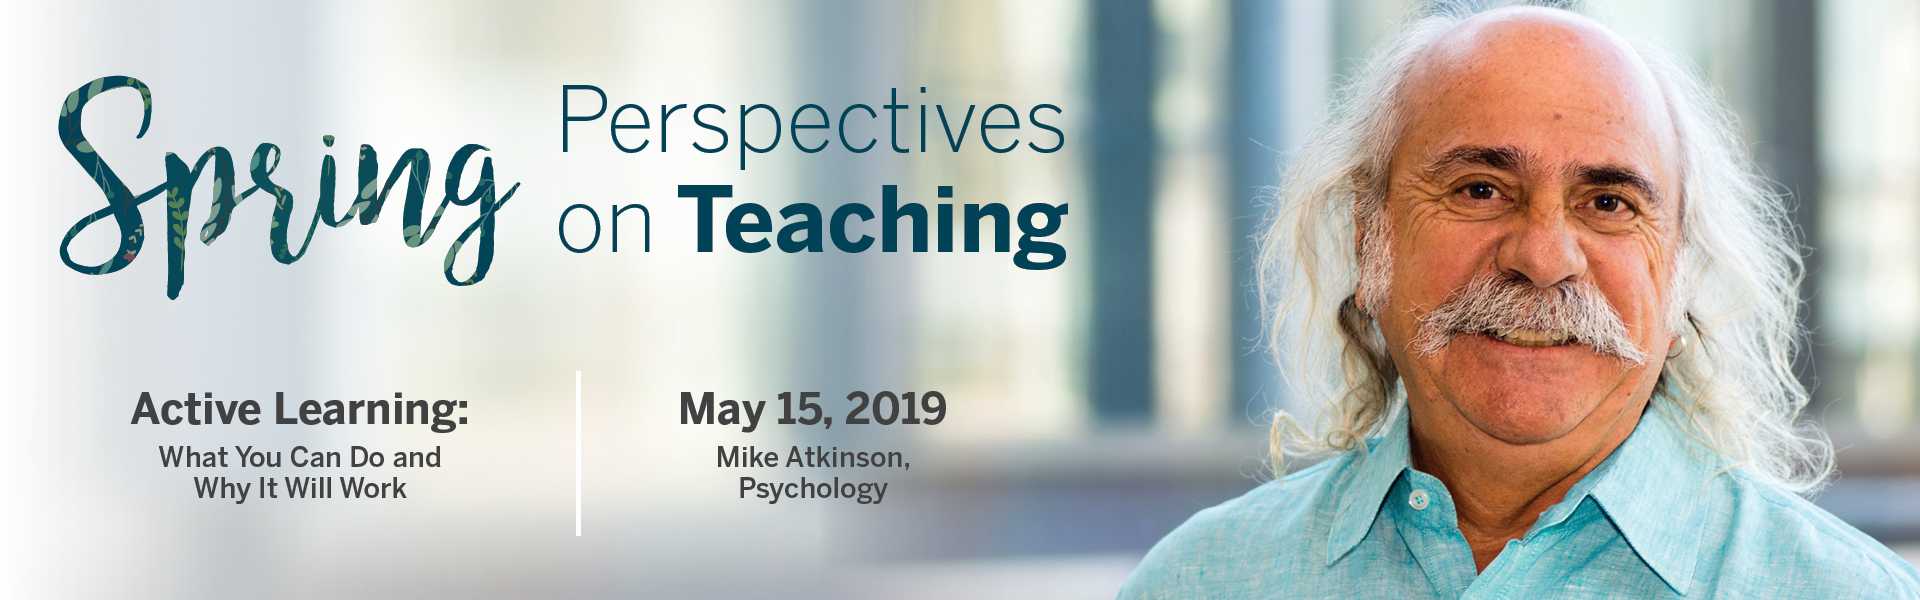 Spring Perspectives on Teaching Conference